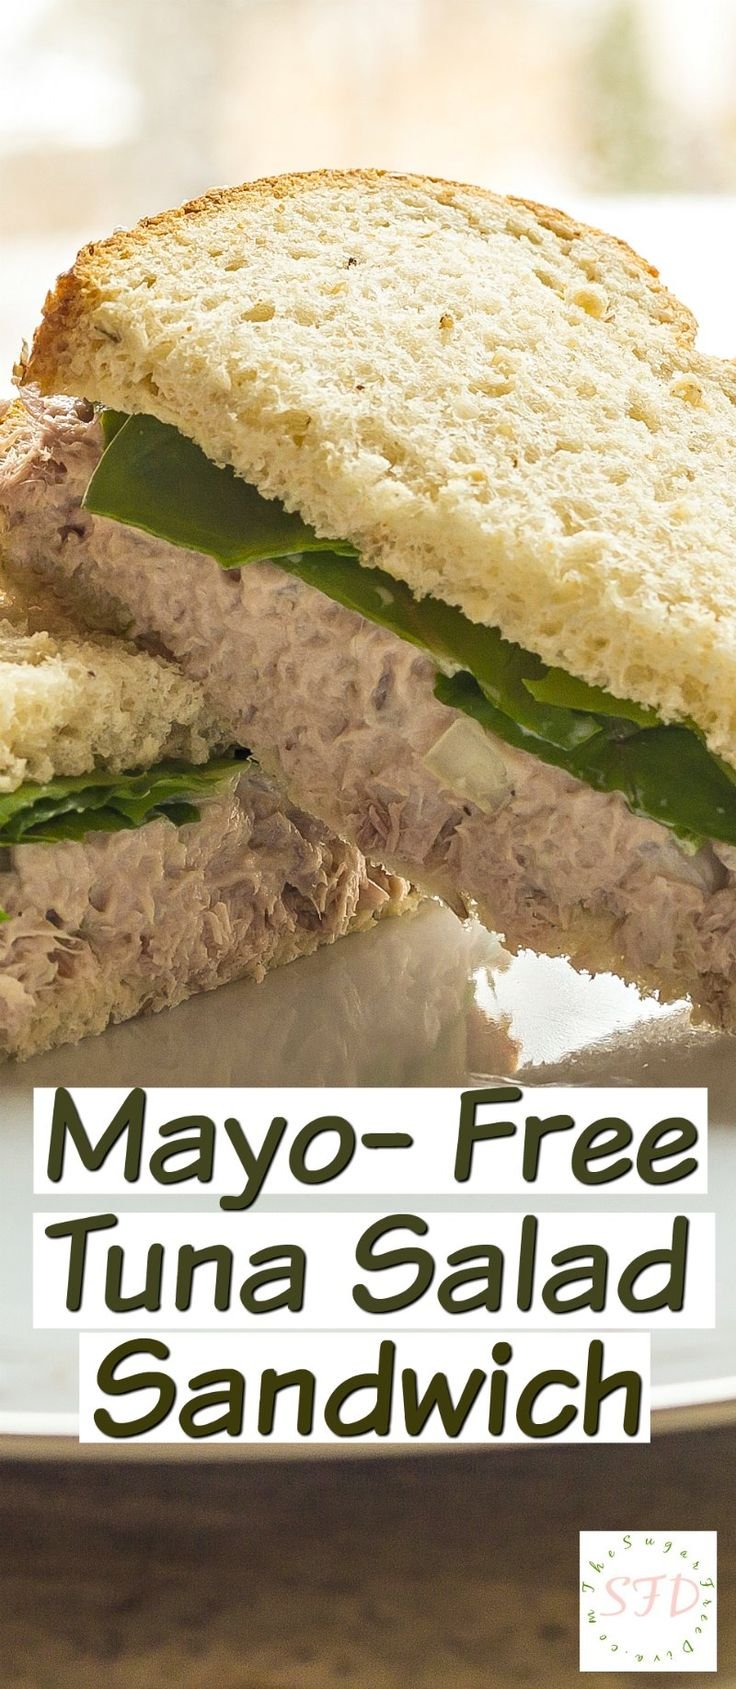 Mayonnaise Free Tuna Salad Sandwich- love the added protein and fewer fat calories in this recipe